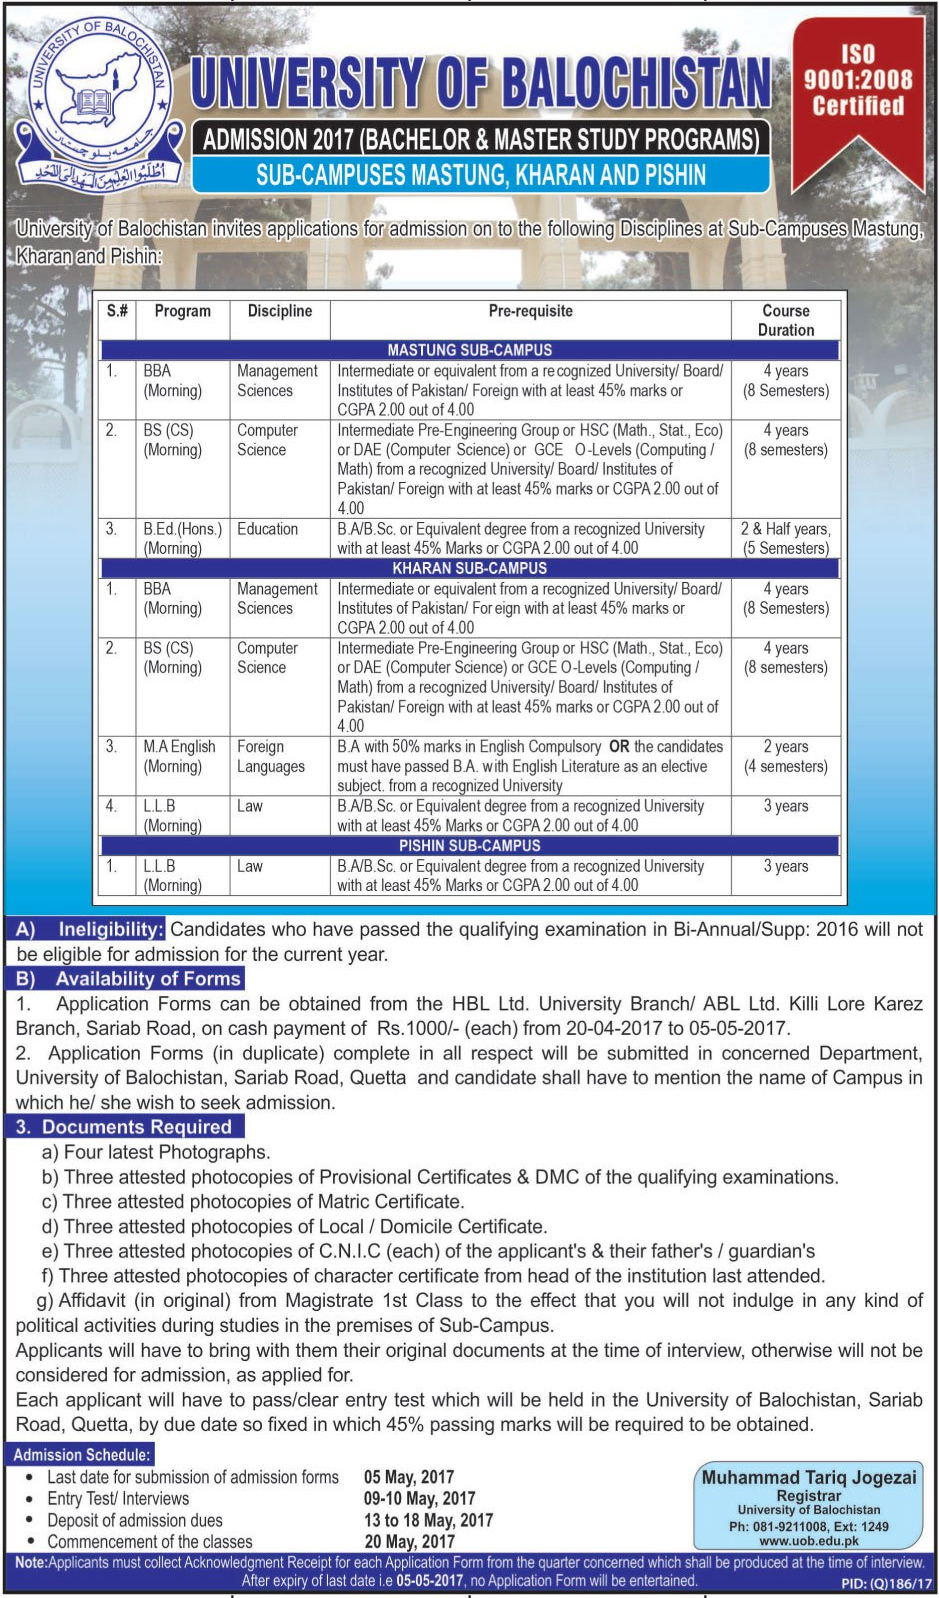 UOB Quetta Admissions 2018 University Of Balochistan Admission Form, Date Schedule